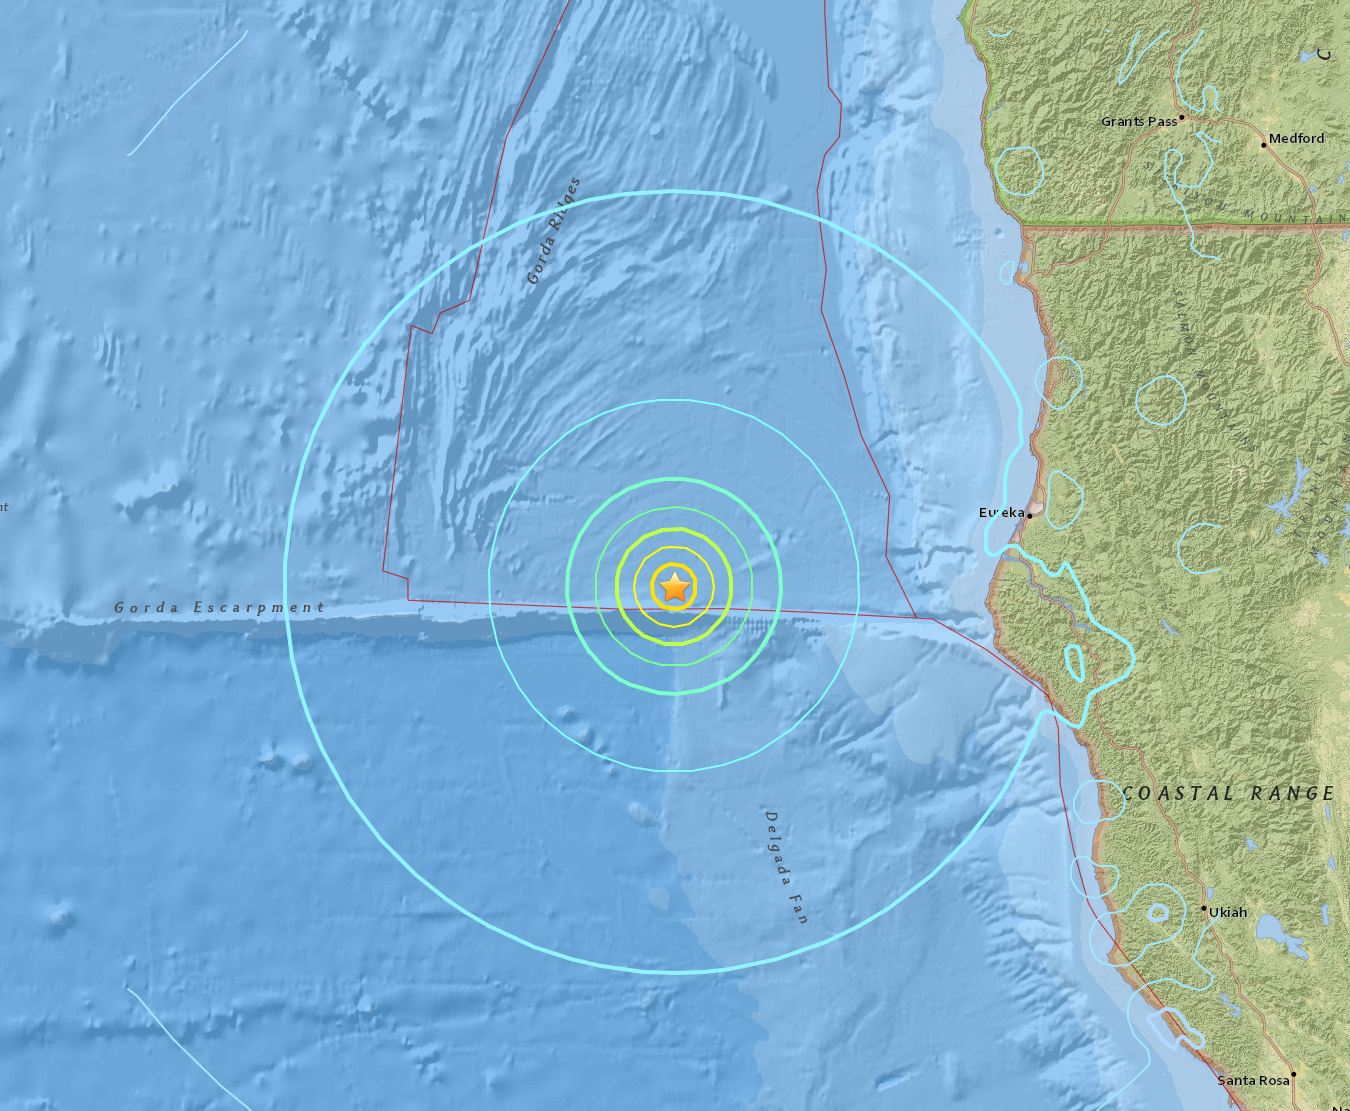 Location of 6.8 earthquake off the coast of Northern California, USGS Government